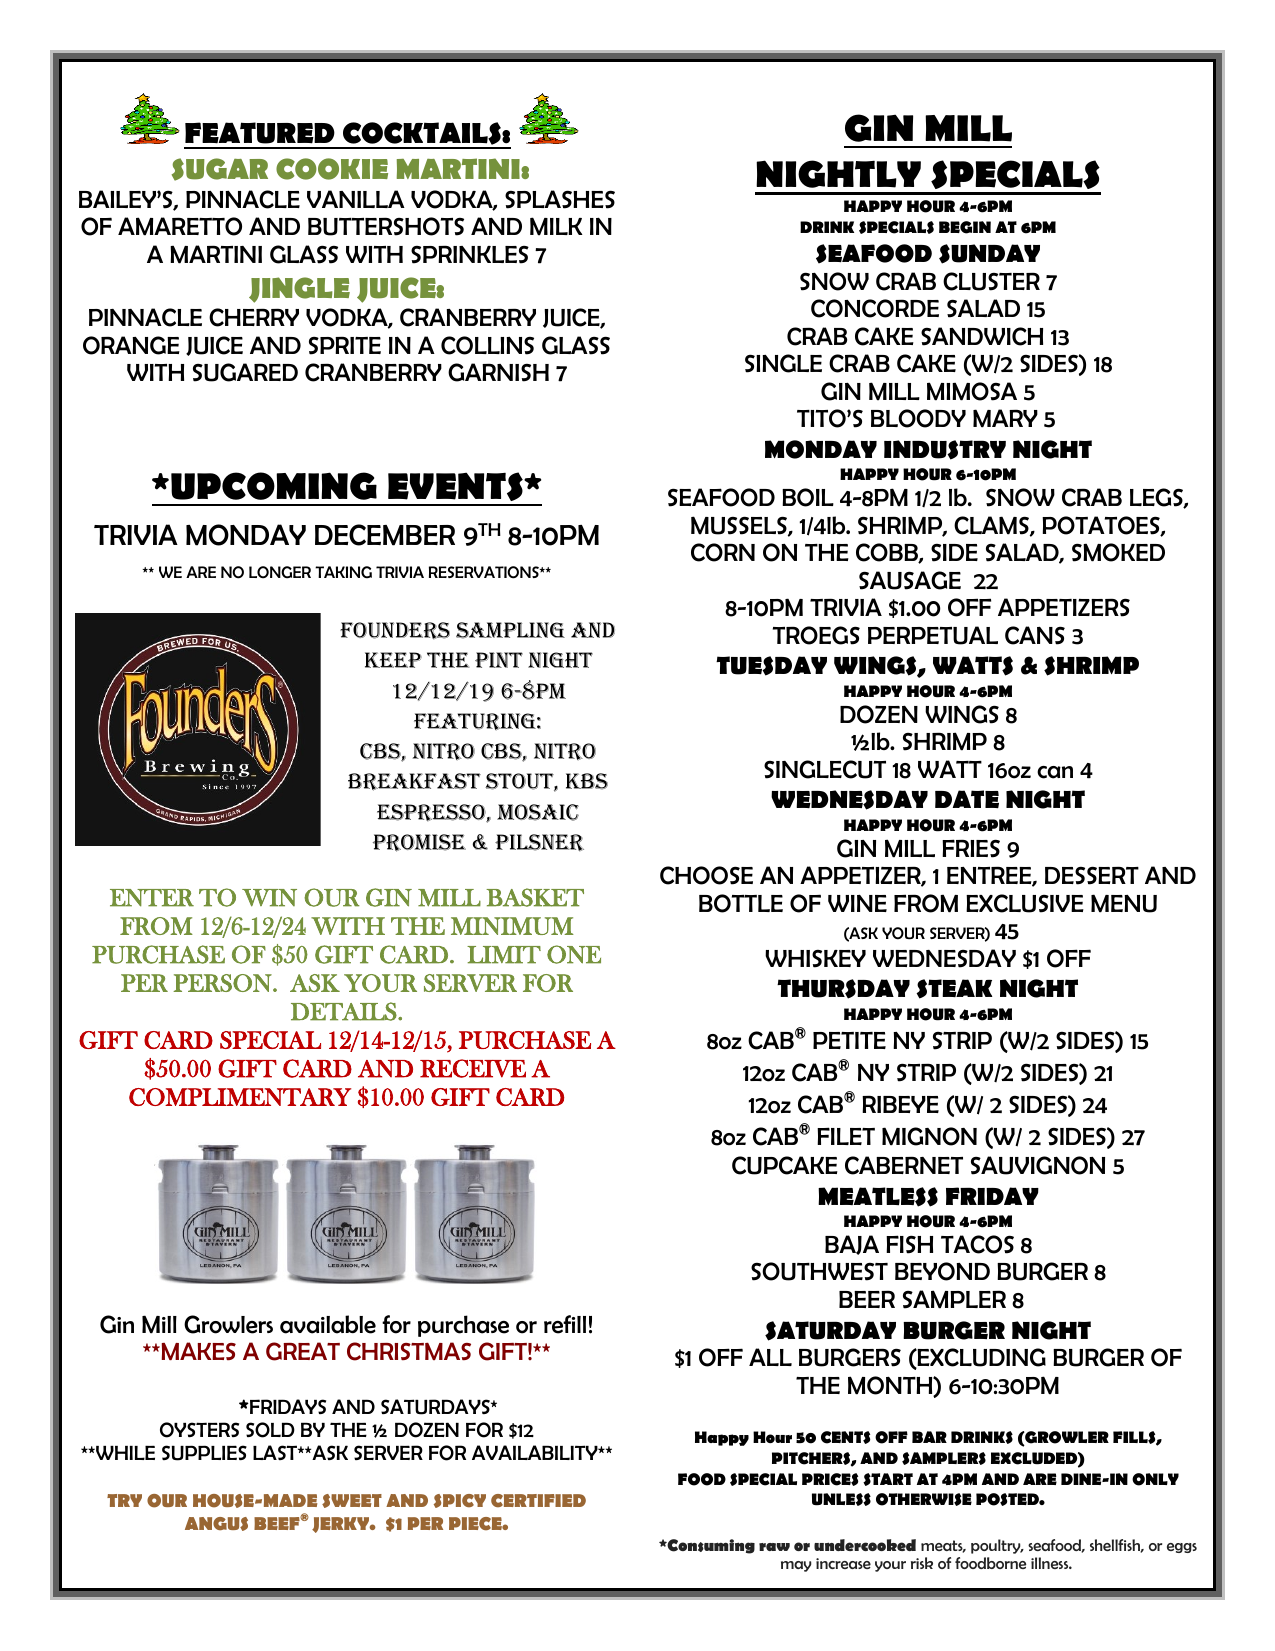 Gin Mill Weekly Specials for Dec 9th - Dec 15th (Page 2))